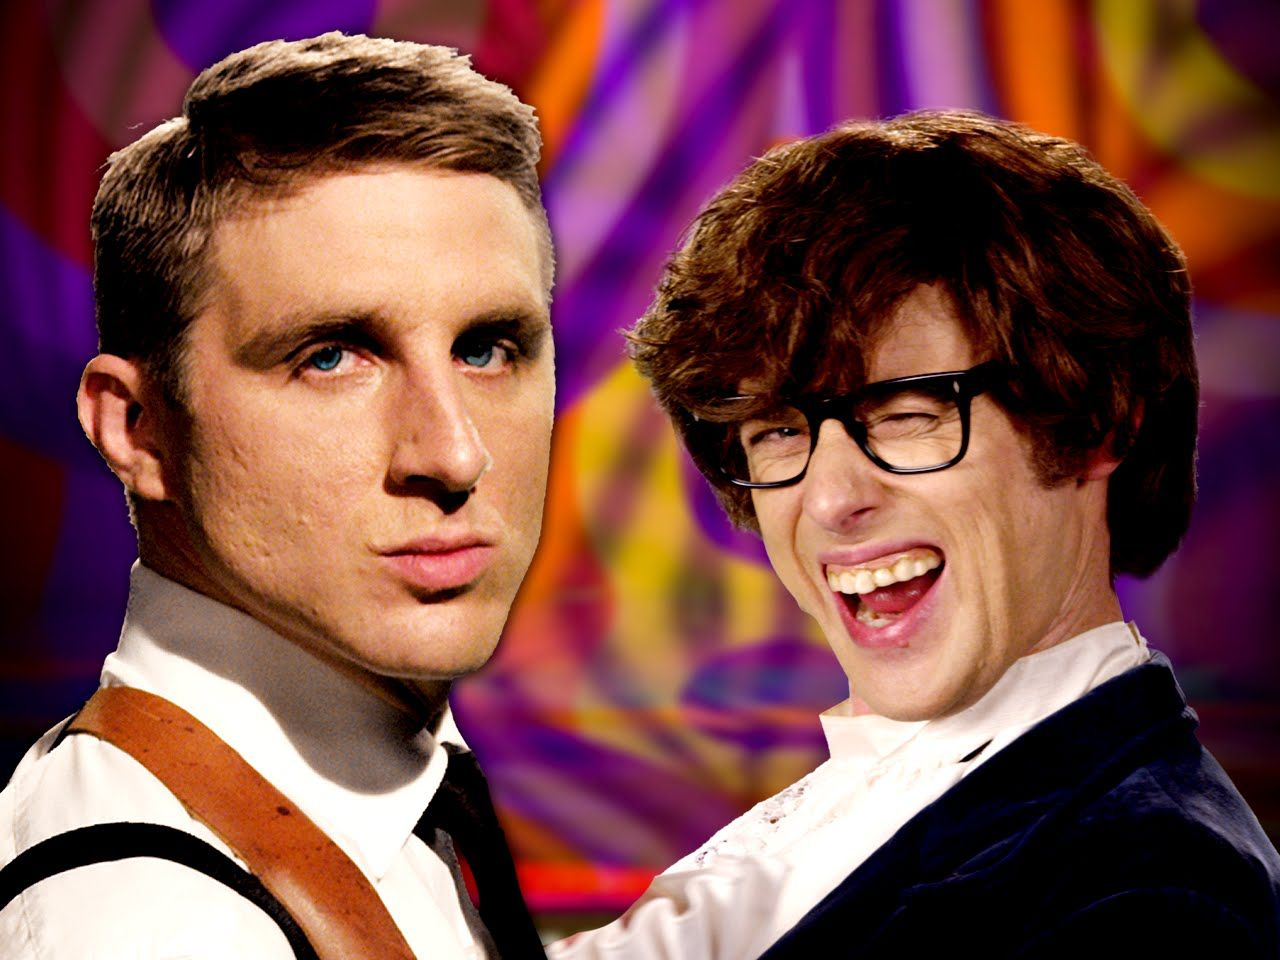 James Bond Vs Austin Powers Epic Rap Battles Of History Season